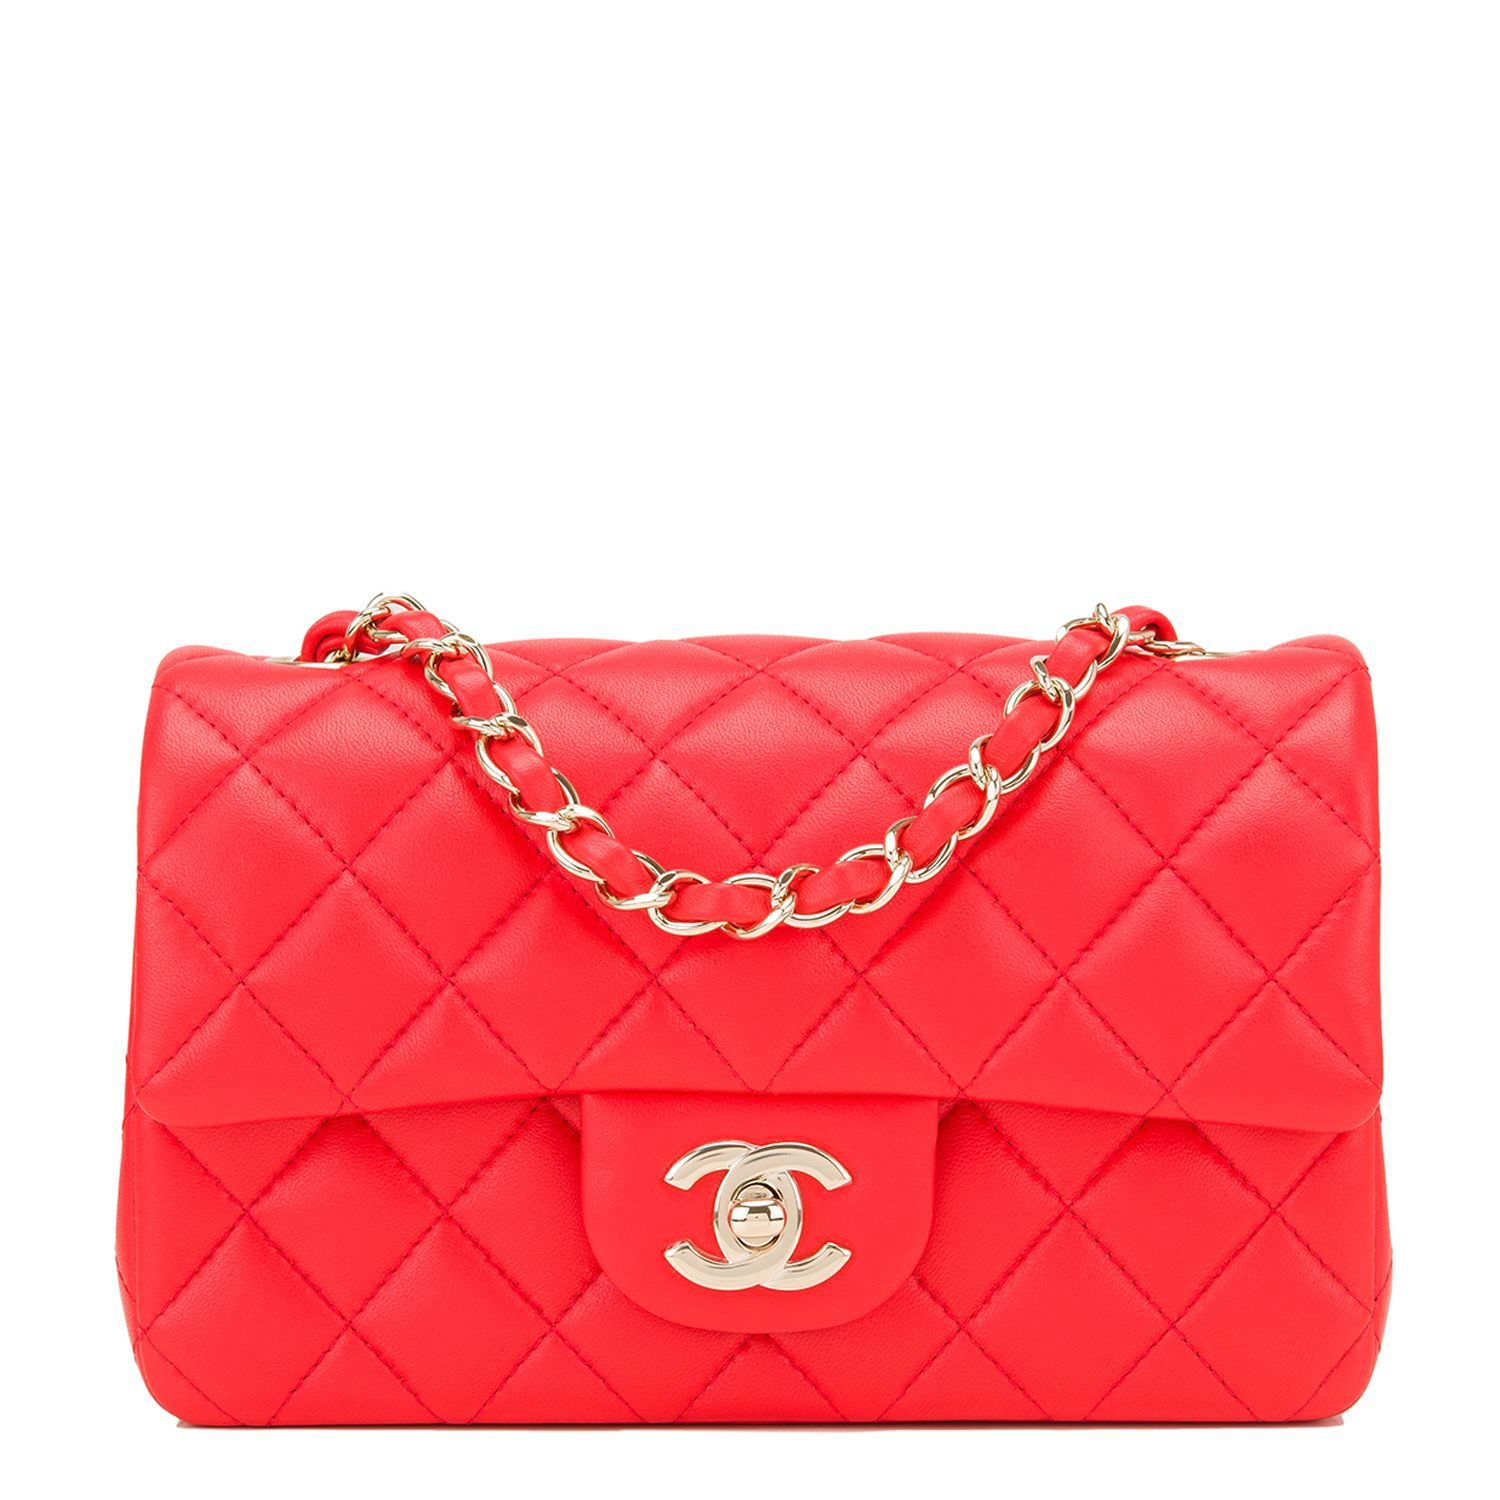 9c33fb678fb254 #Chanel Red Quilted Lambskin Rectangular Mini Classic Flap #Bag  #Chanelhandbags